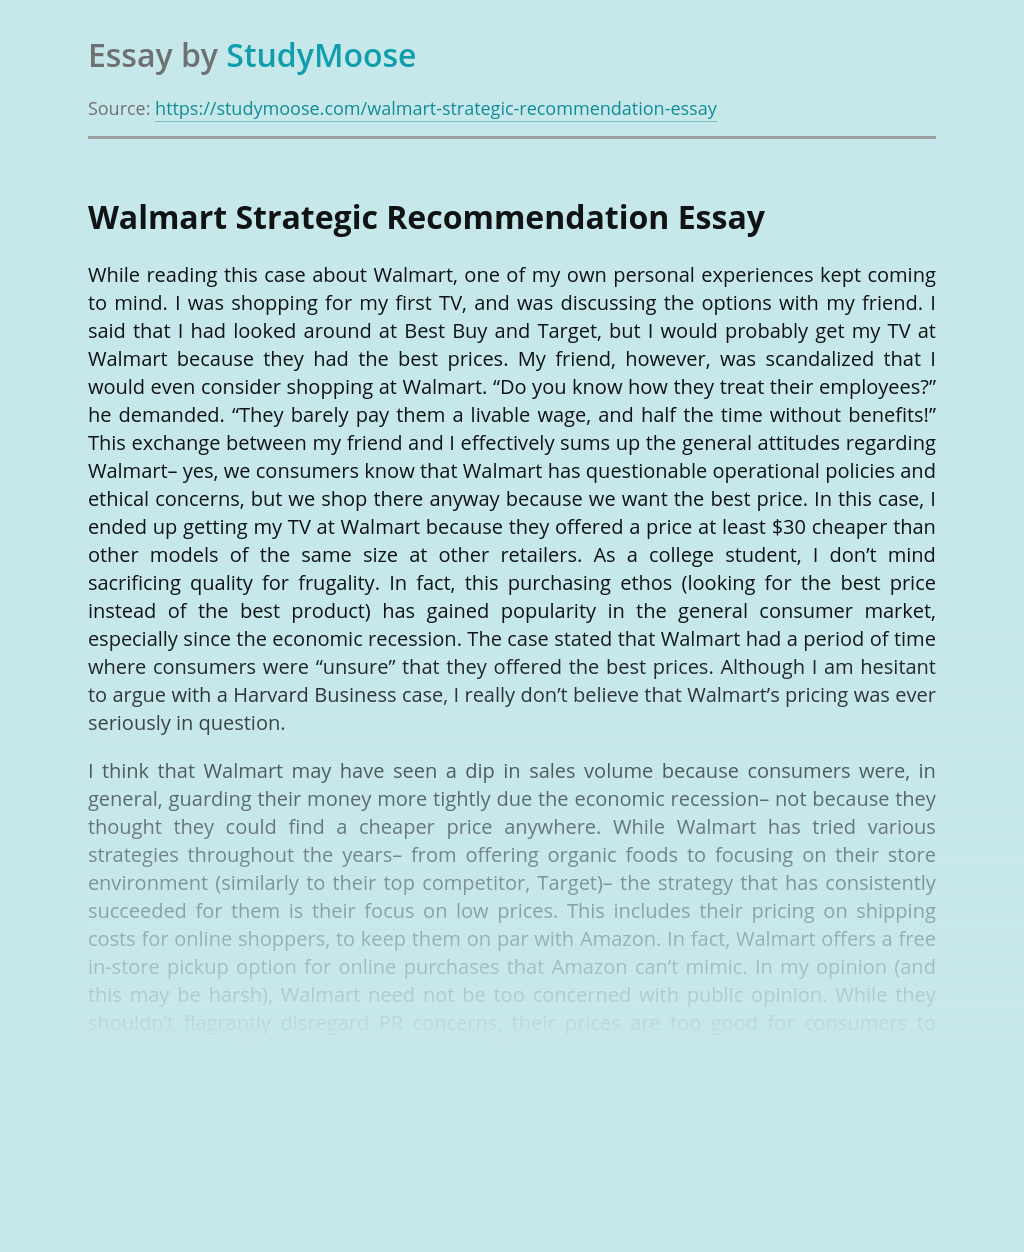 Walmart Strategic Recommendation